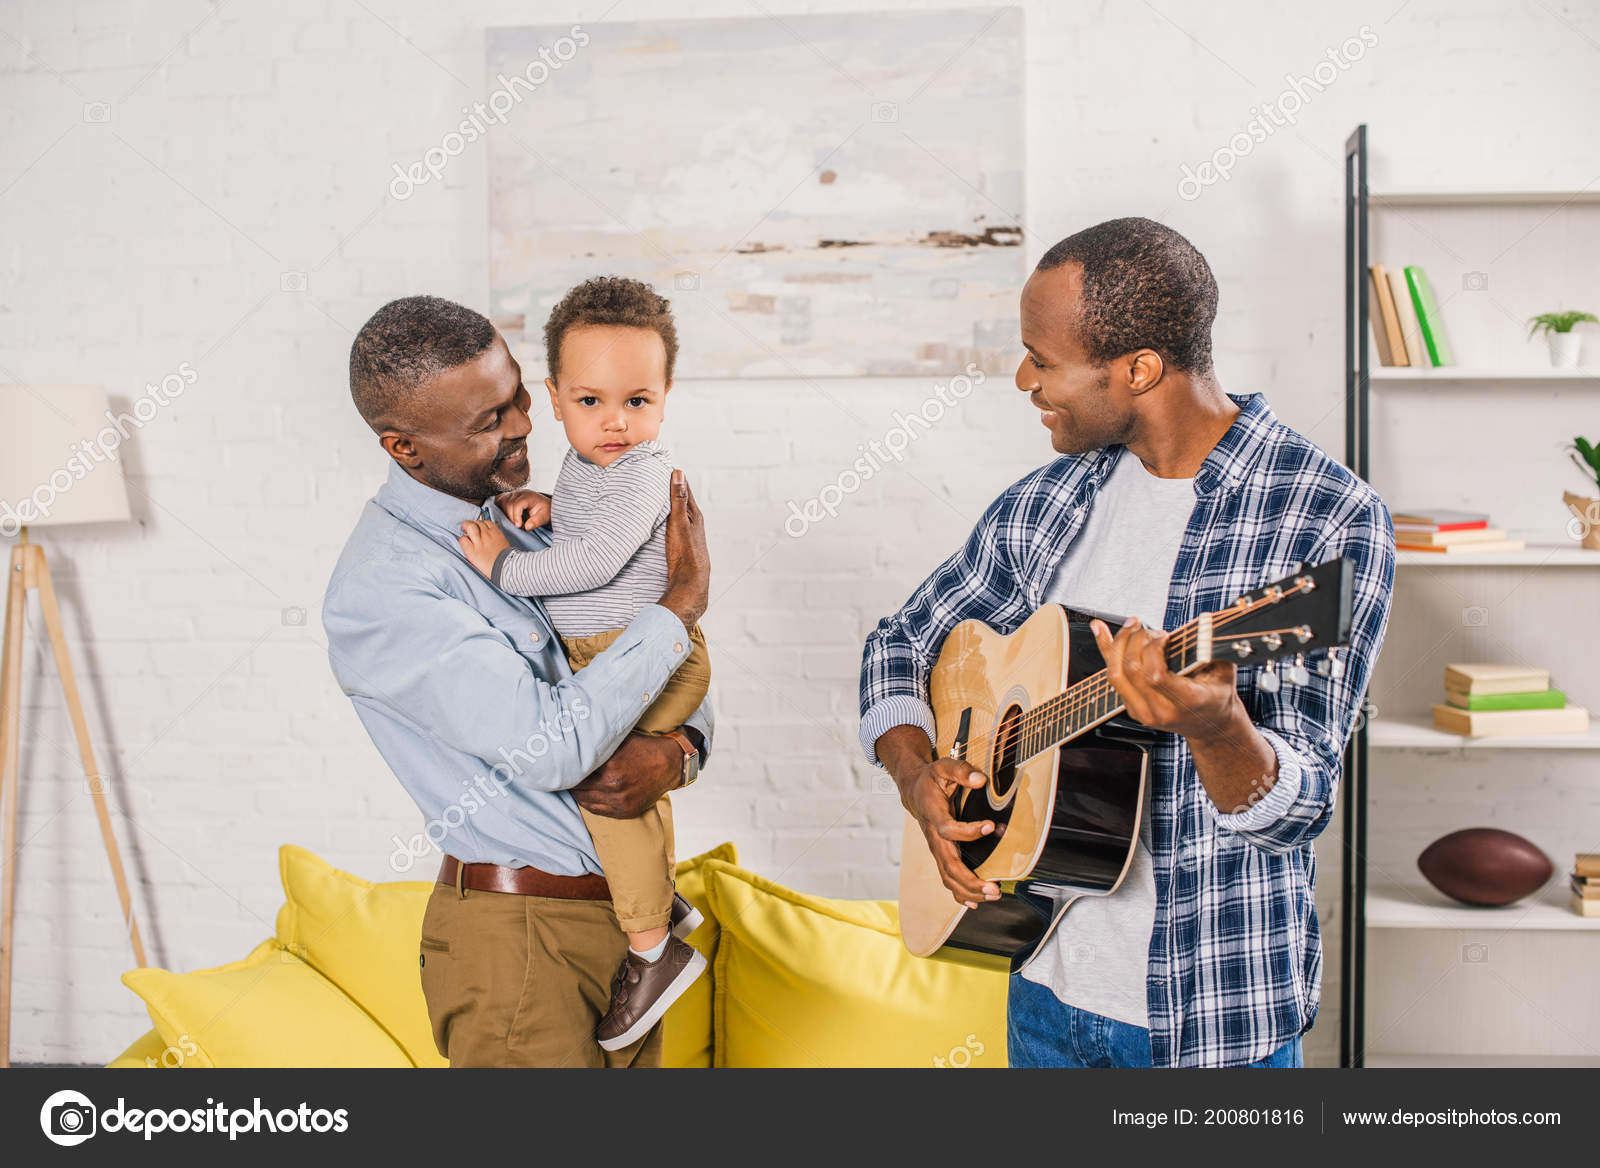 Smiling Young Man Playing Guitar Looking Happy Grandfather